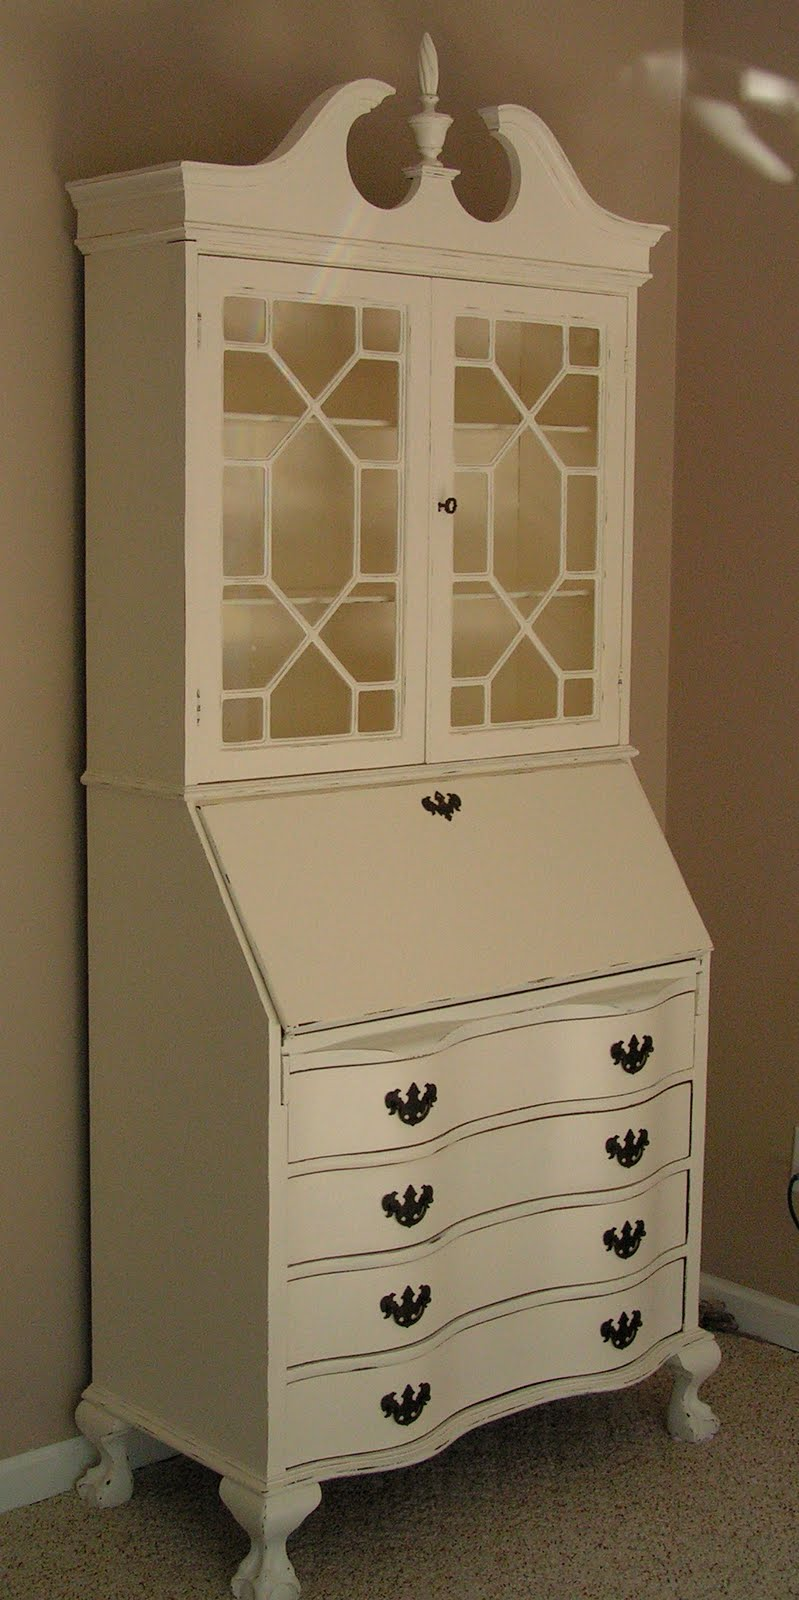 Chic Cottage Junk: Antique Secretary Desk Re-Fab(ulous)!